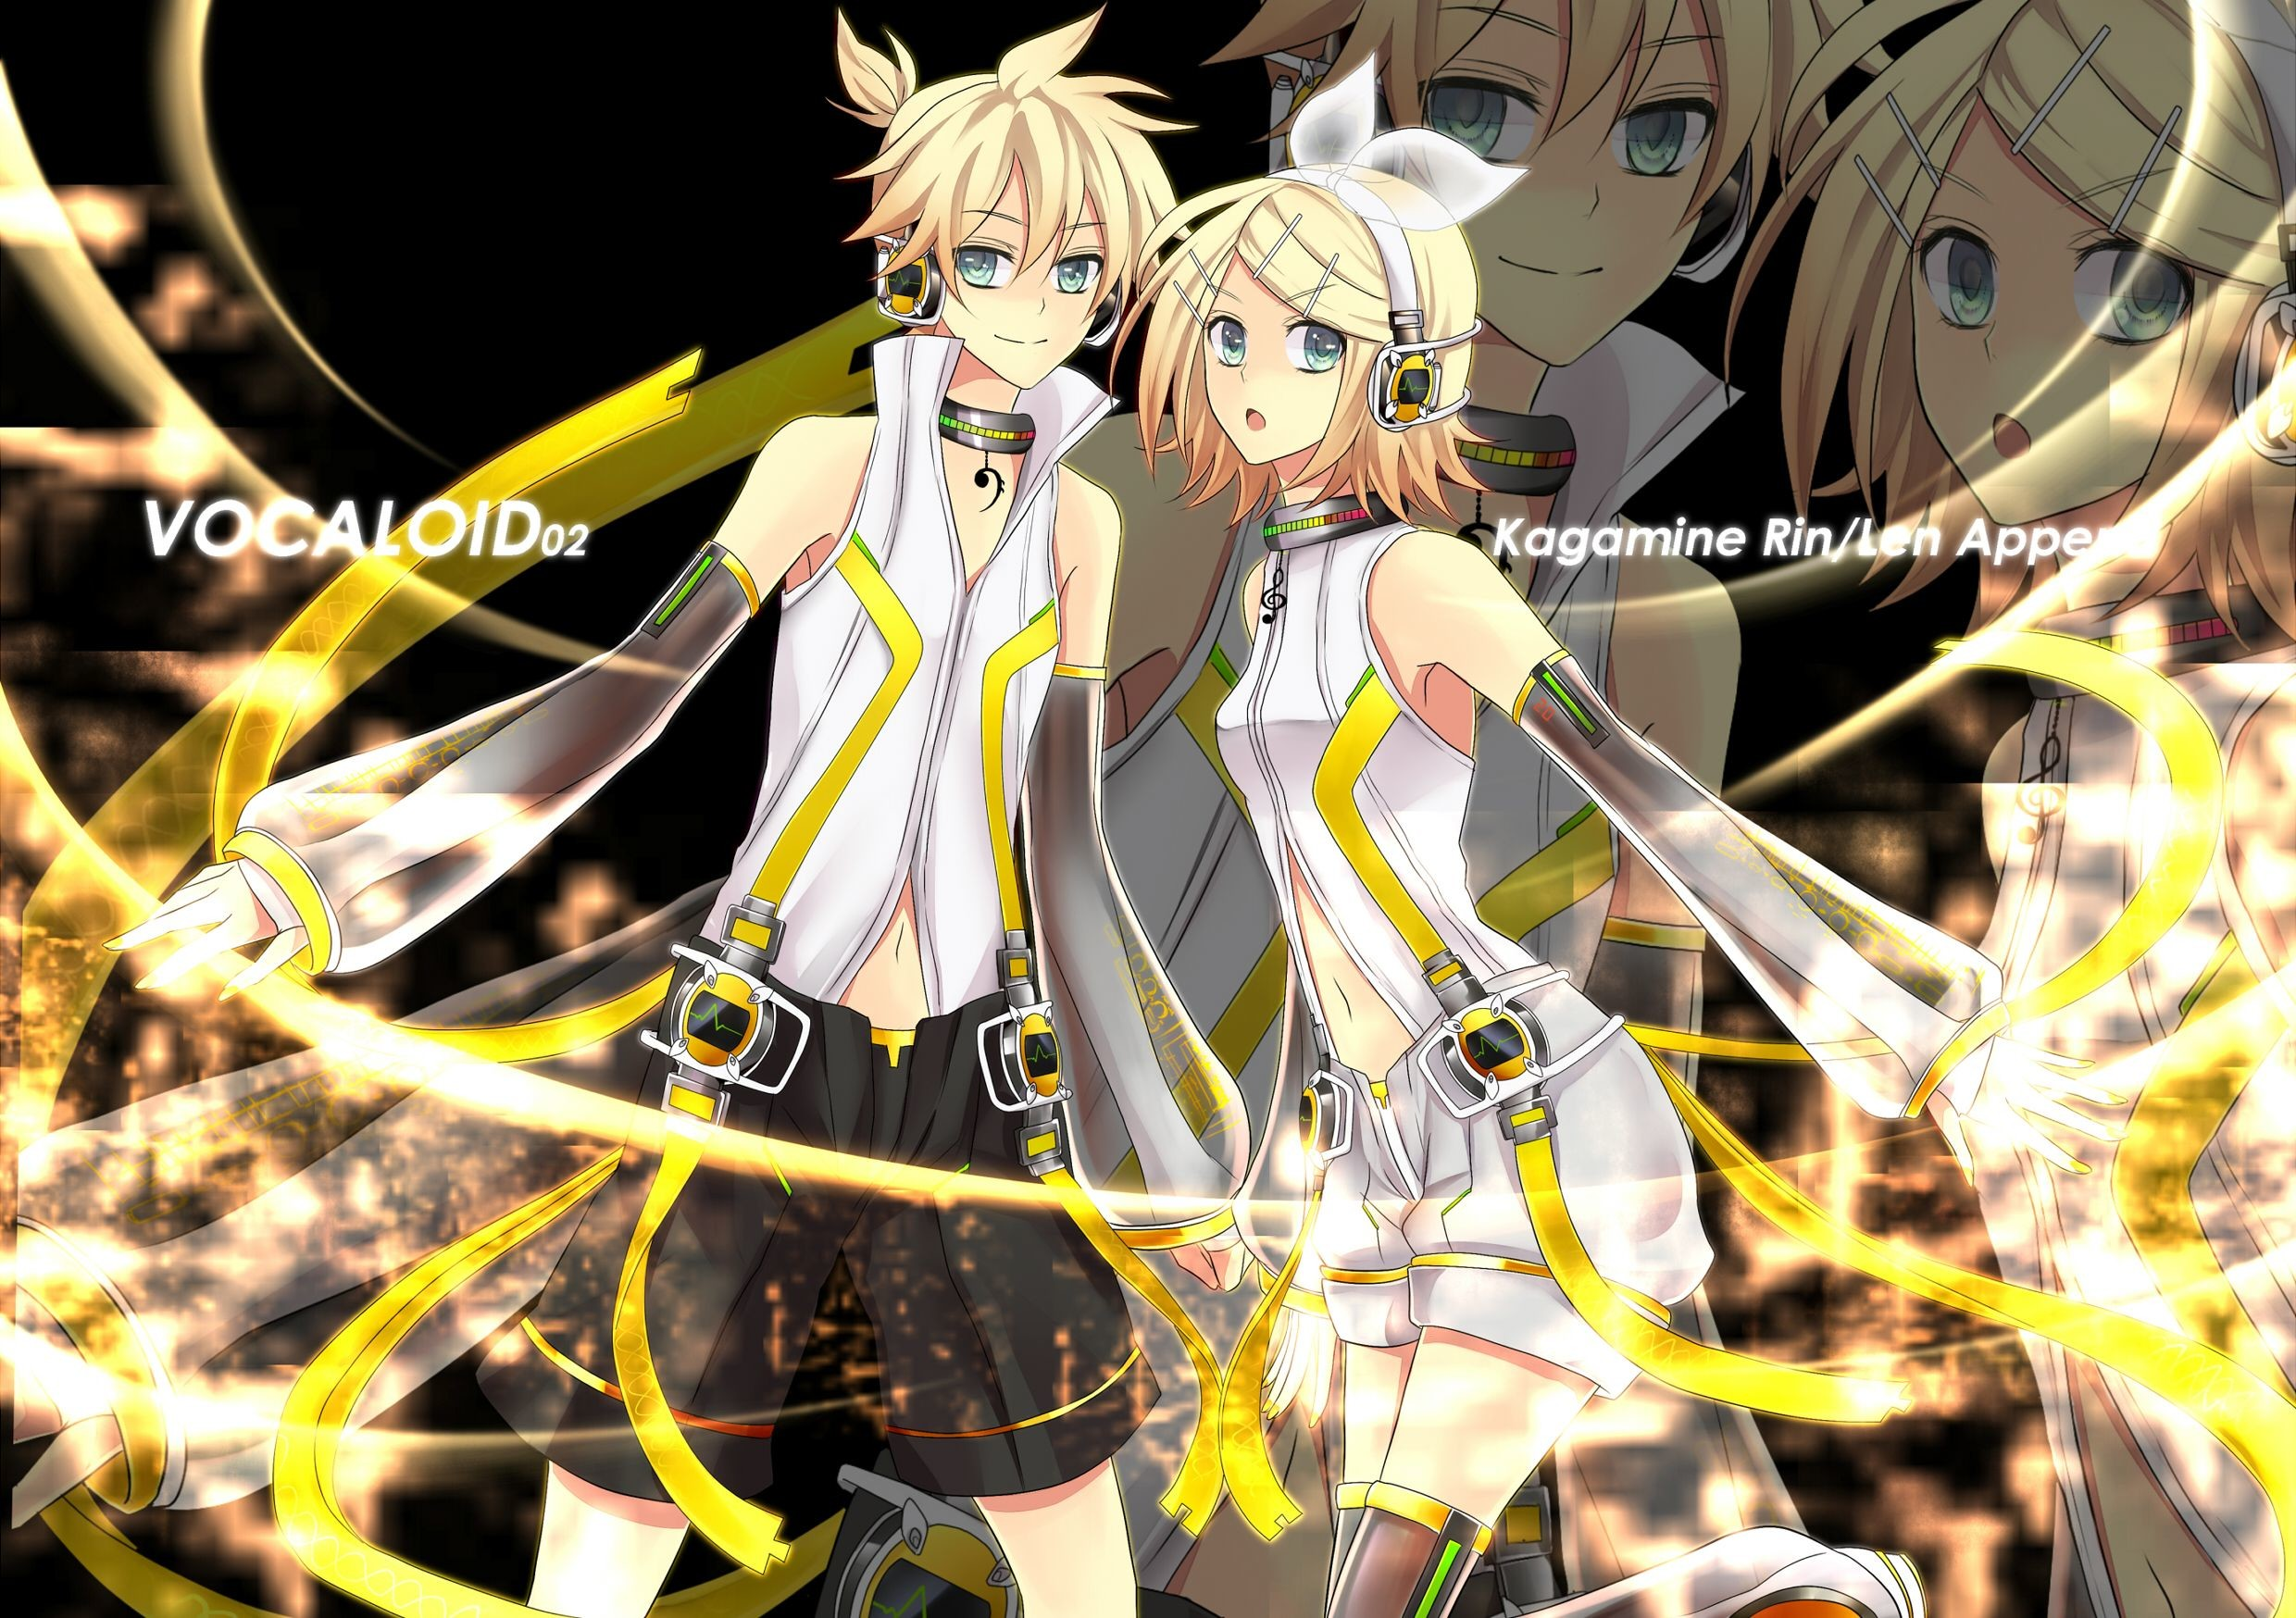 Res: 2480x1748, #kagamine #rin #len append wallpaper